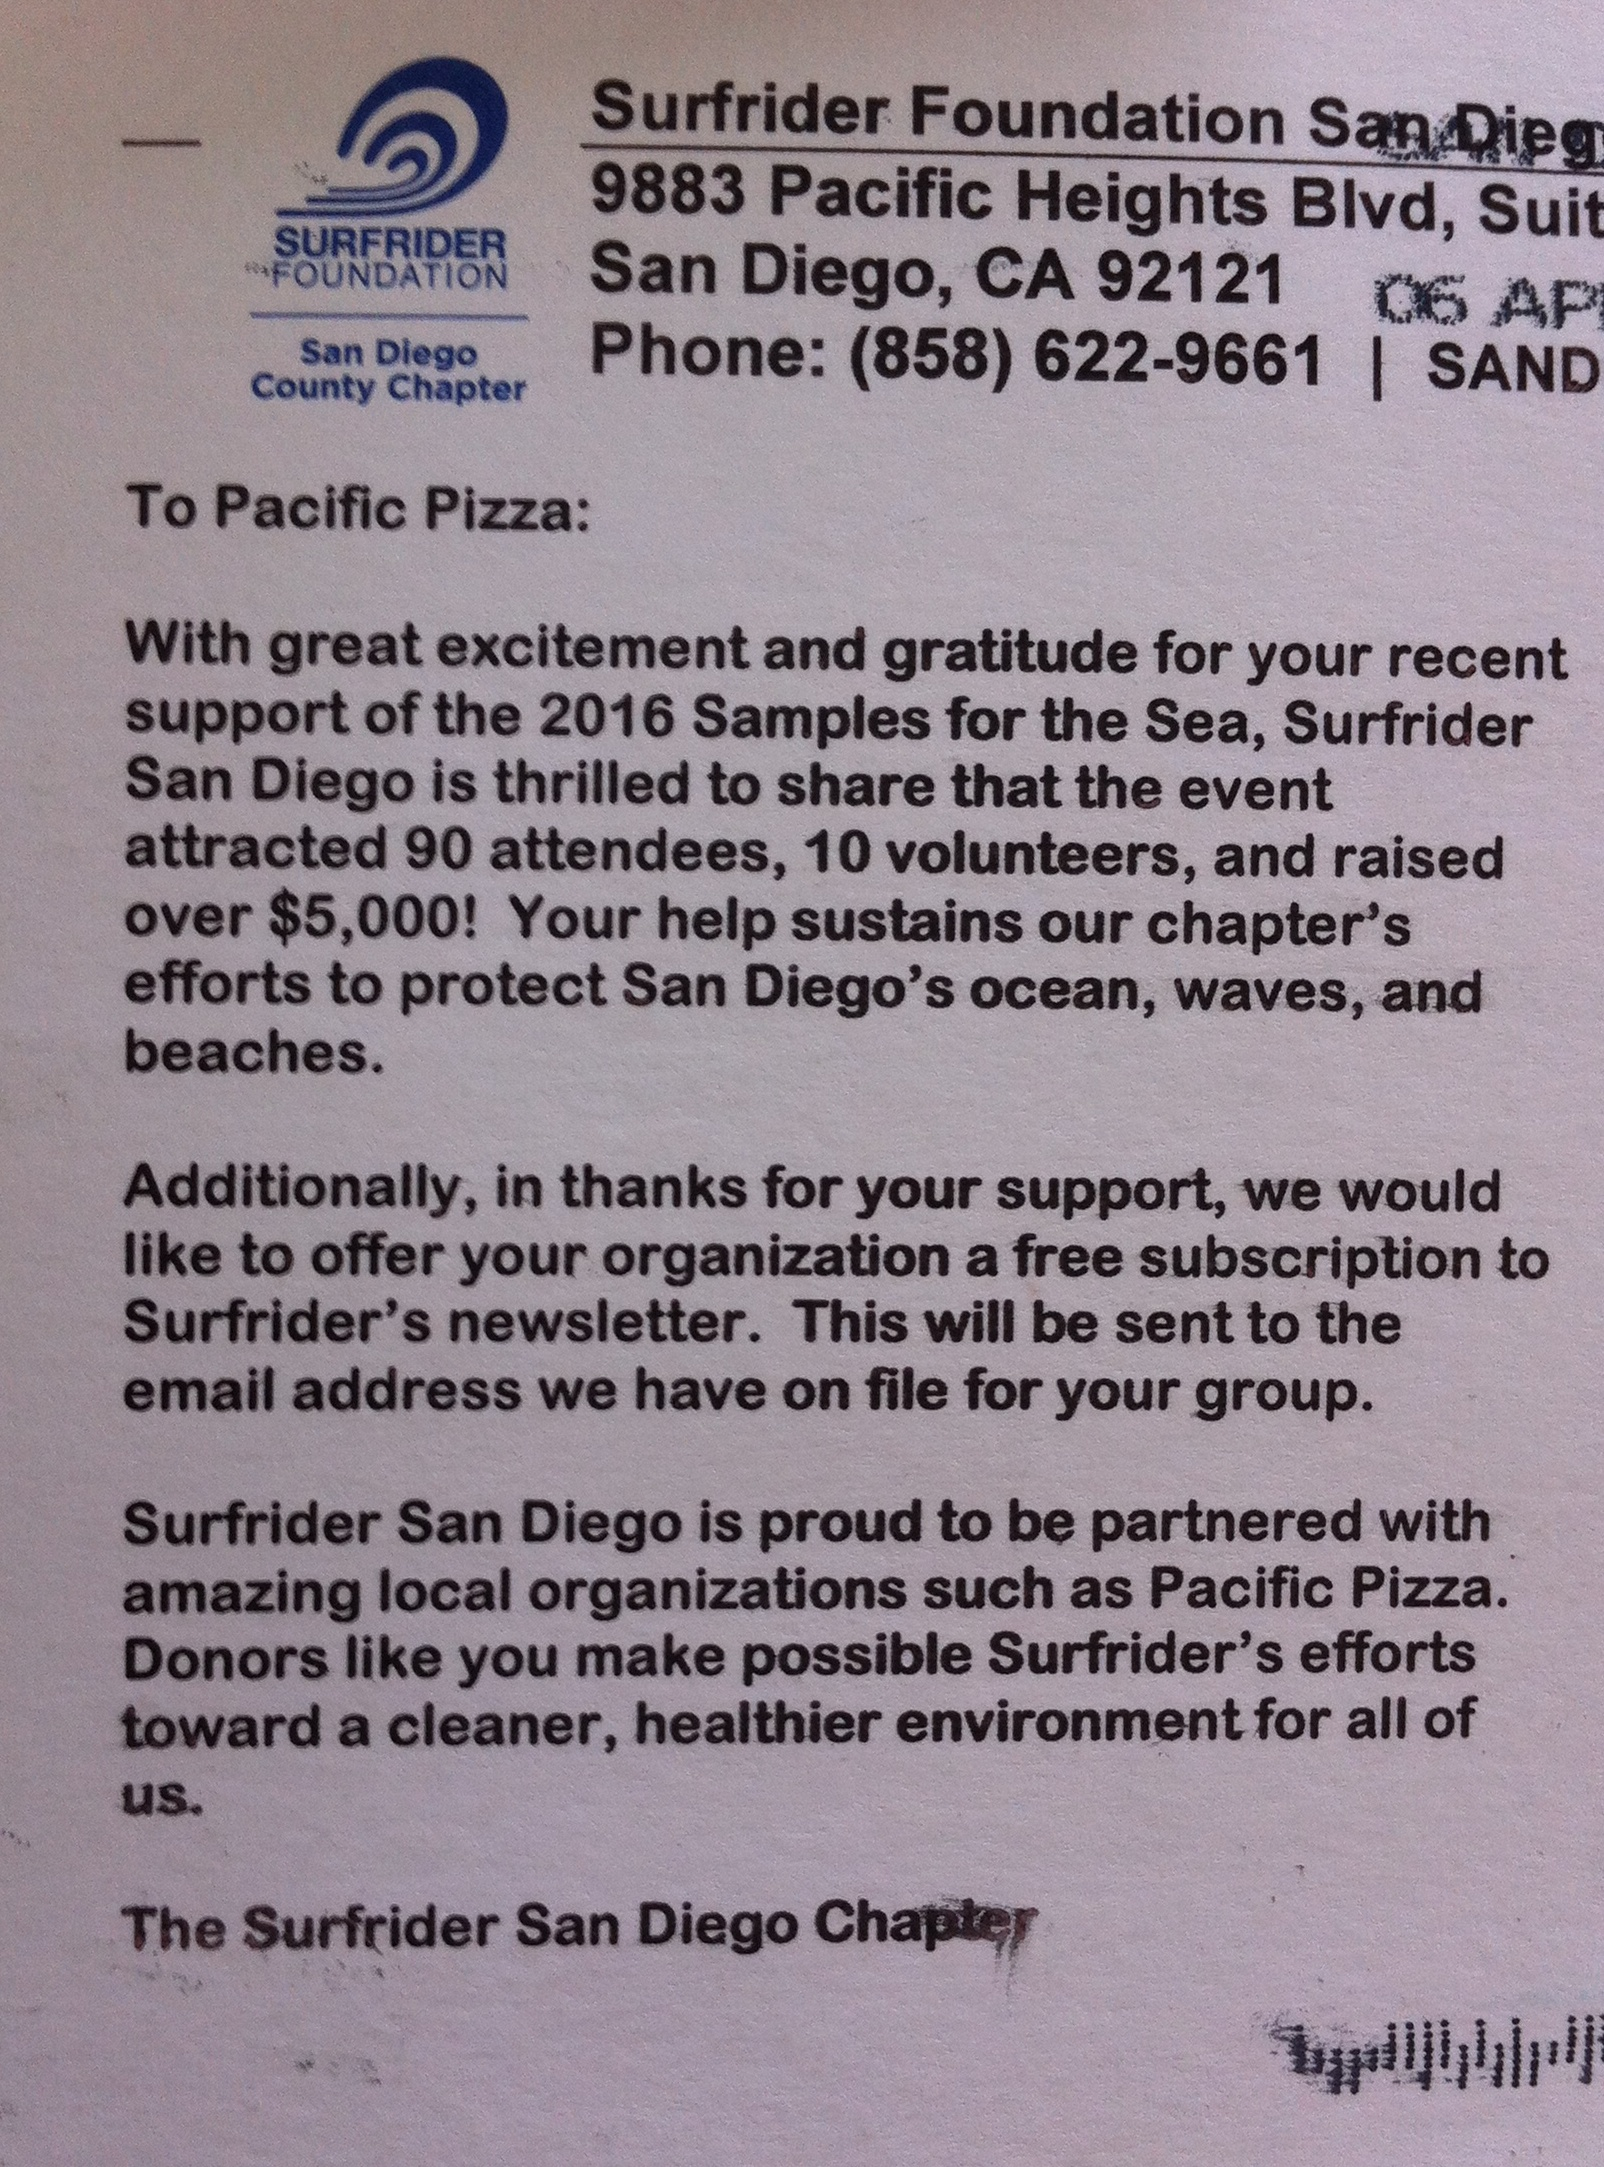 Thanks to the Surfrider Foundation for this great note!